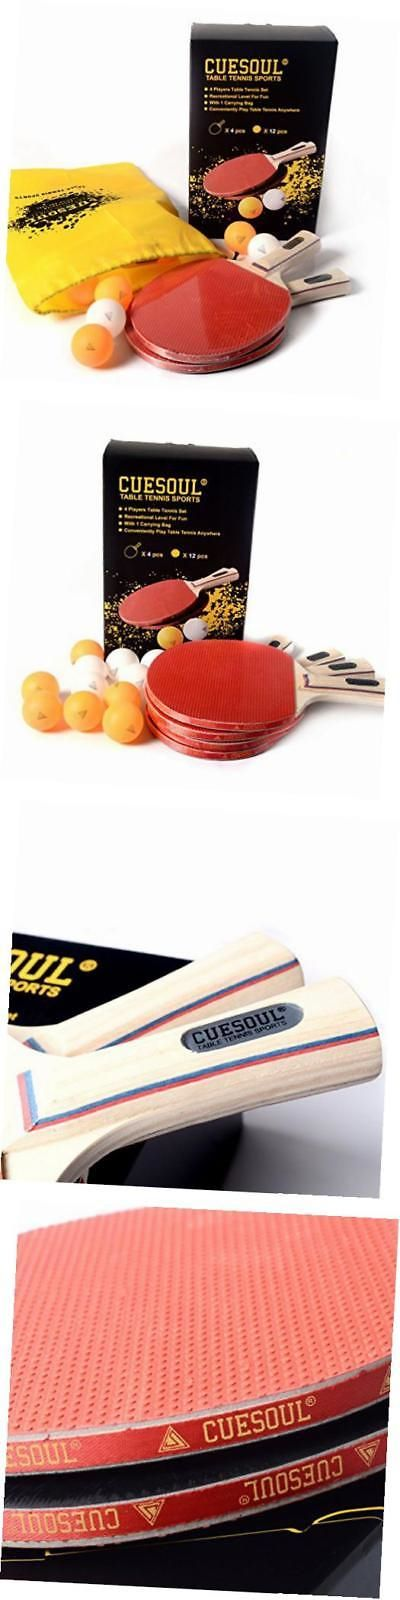 Sets 158955: Table Tennis Set -4 Paddles Rackets And 12 Table Tennis Balls-4 Players Table -> BUY IT NOW ONLY: $45.8 on eBay!